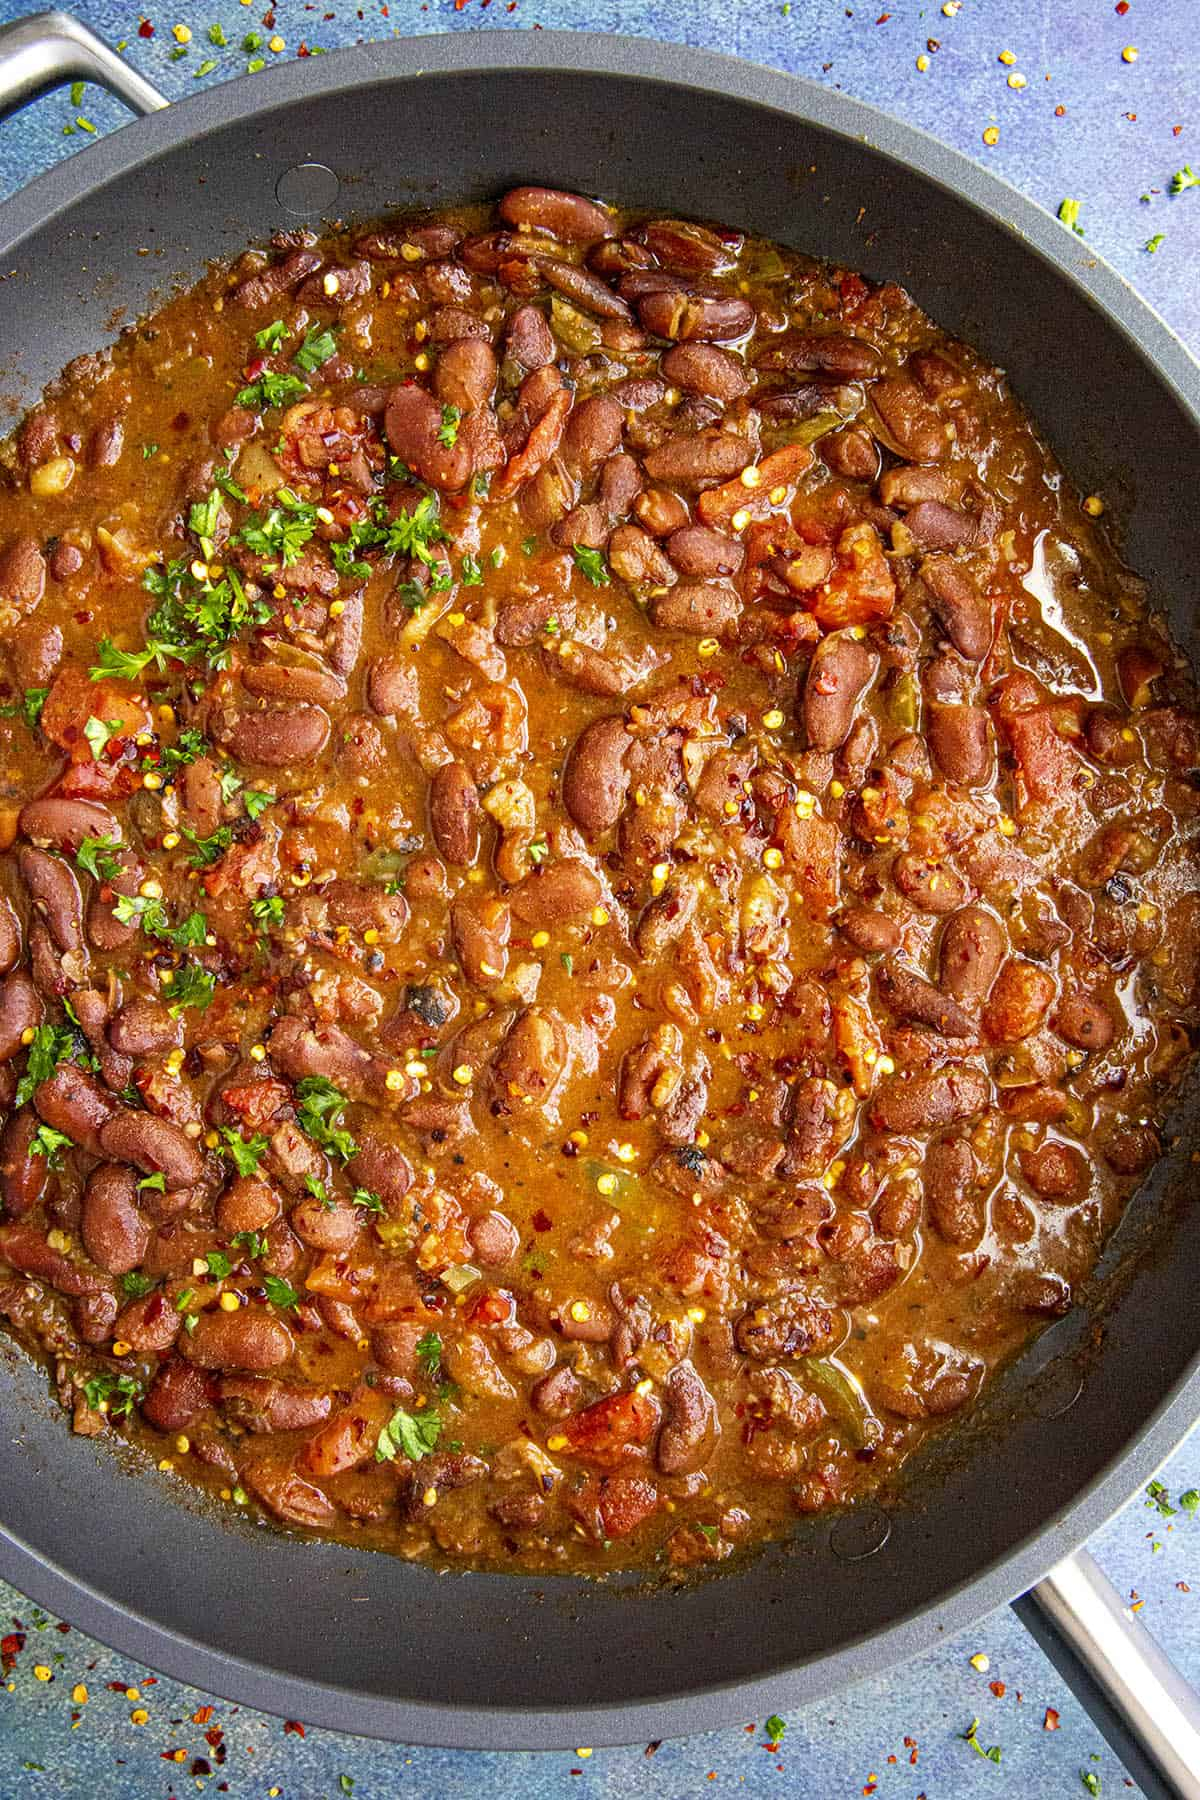 Charro Beans in a pan with garnish